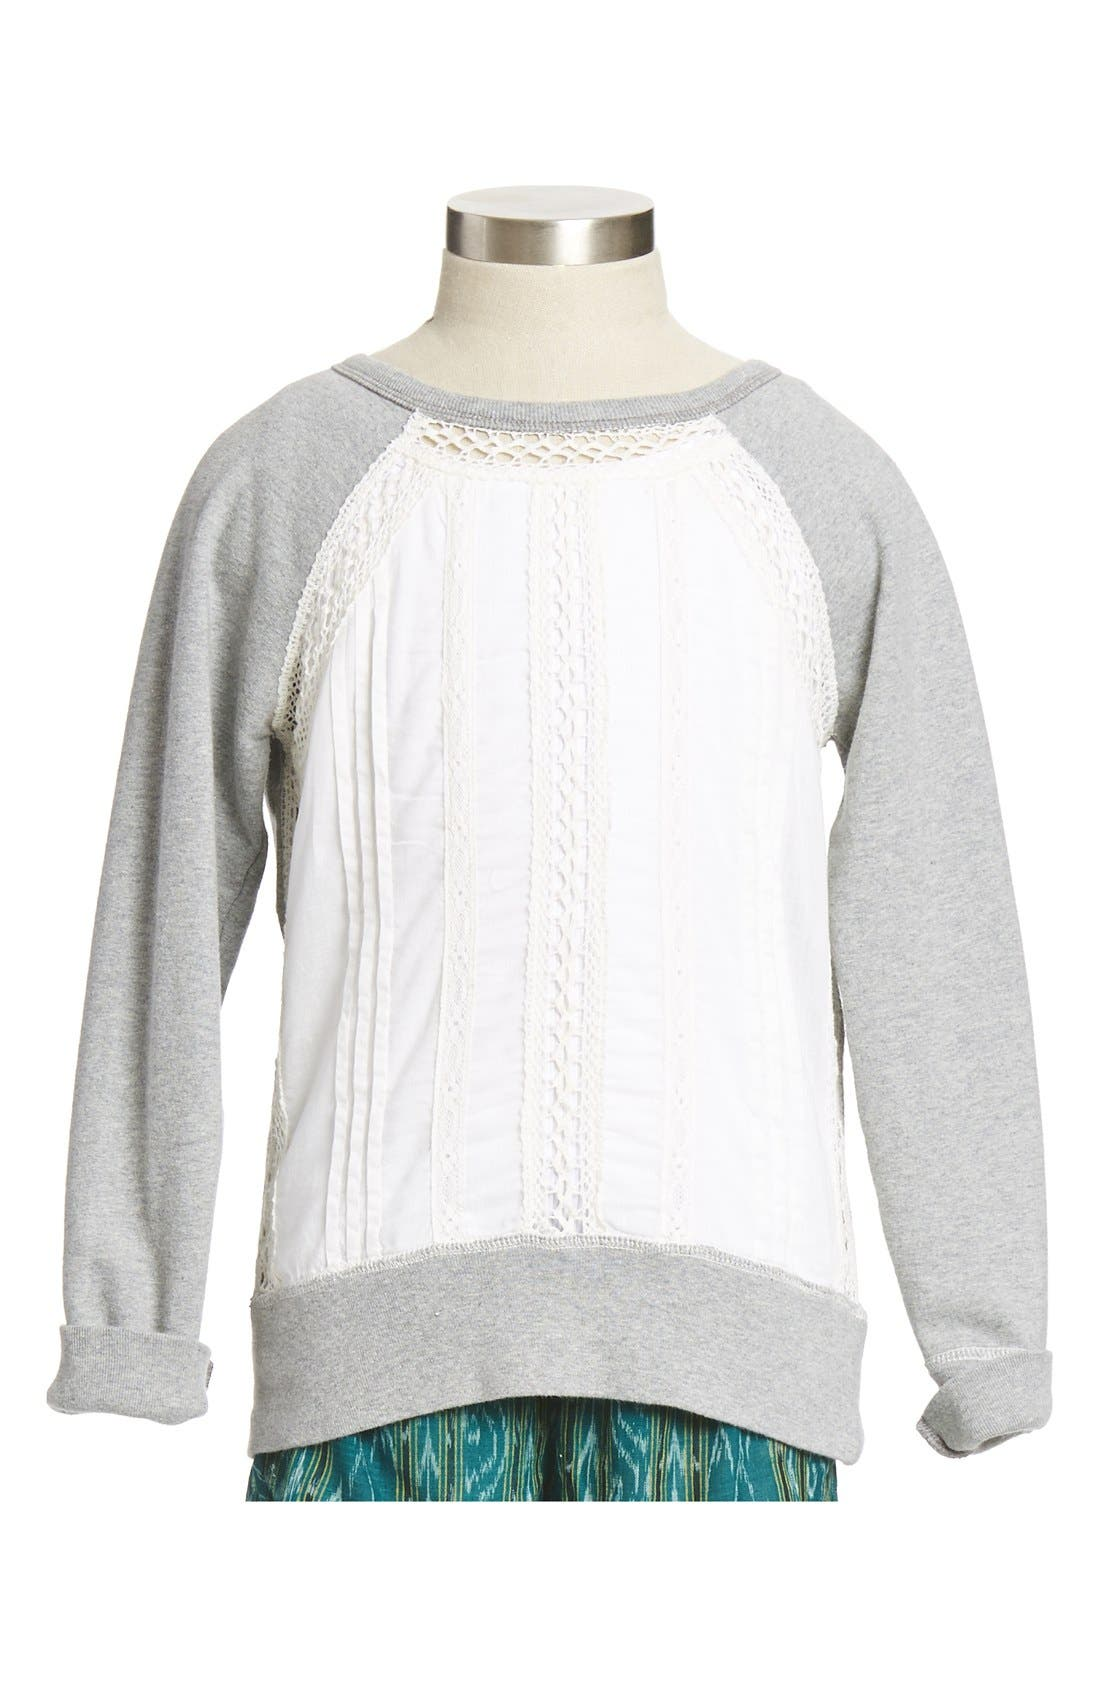 Alternate Image 1 Selected - Peek 'Sparrow' Woven Panel Crewneck Sweatshirt (Toddler Girls, Little Girls & Big Girls)